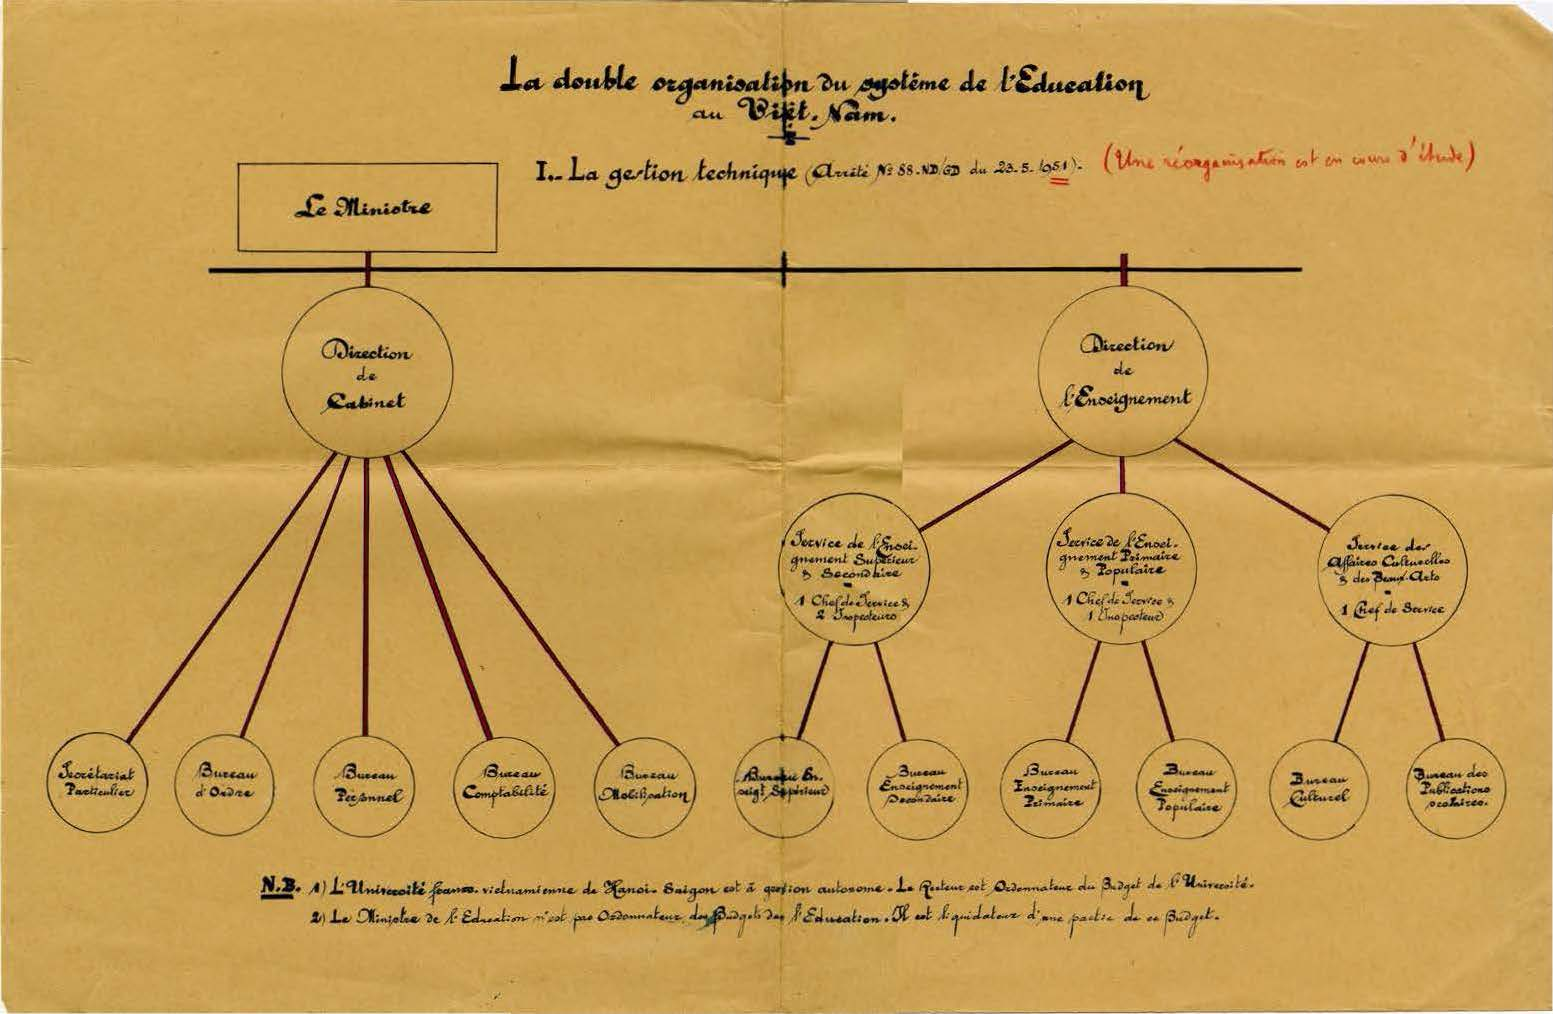 National Education, Department of: Organization Charts, 1957